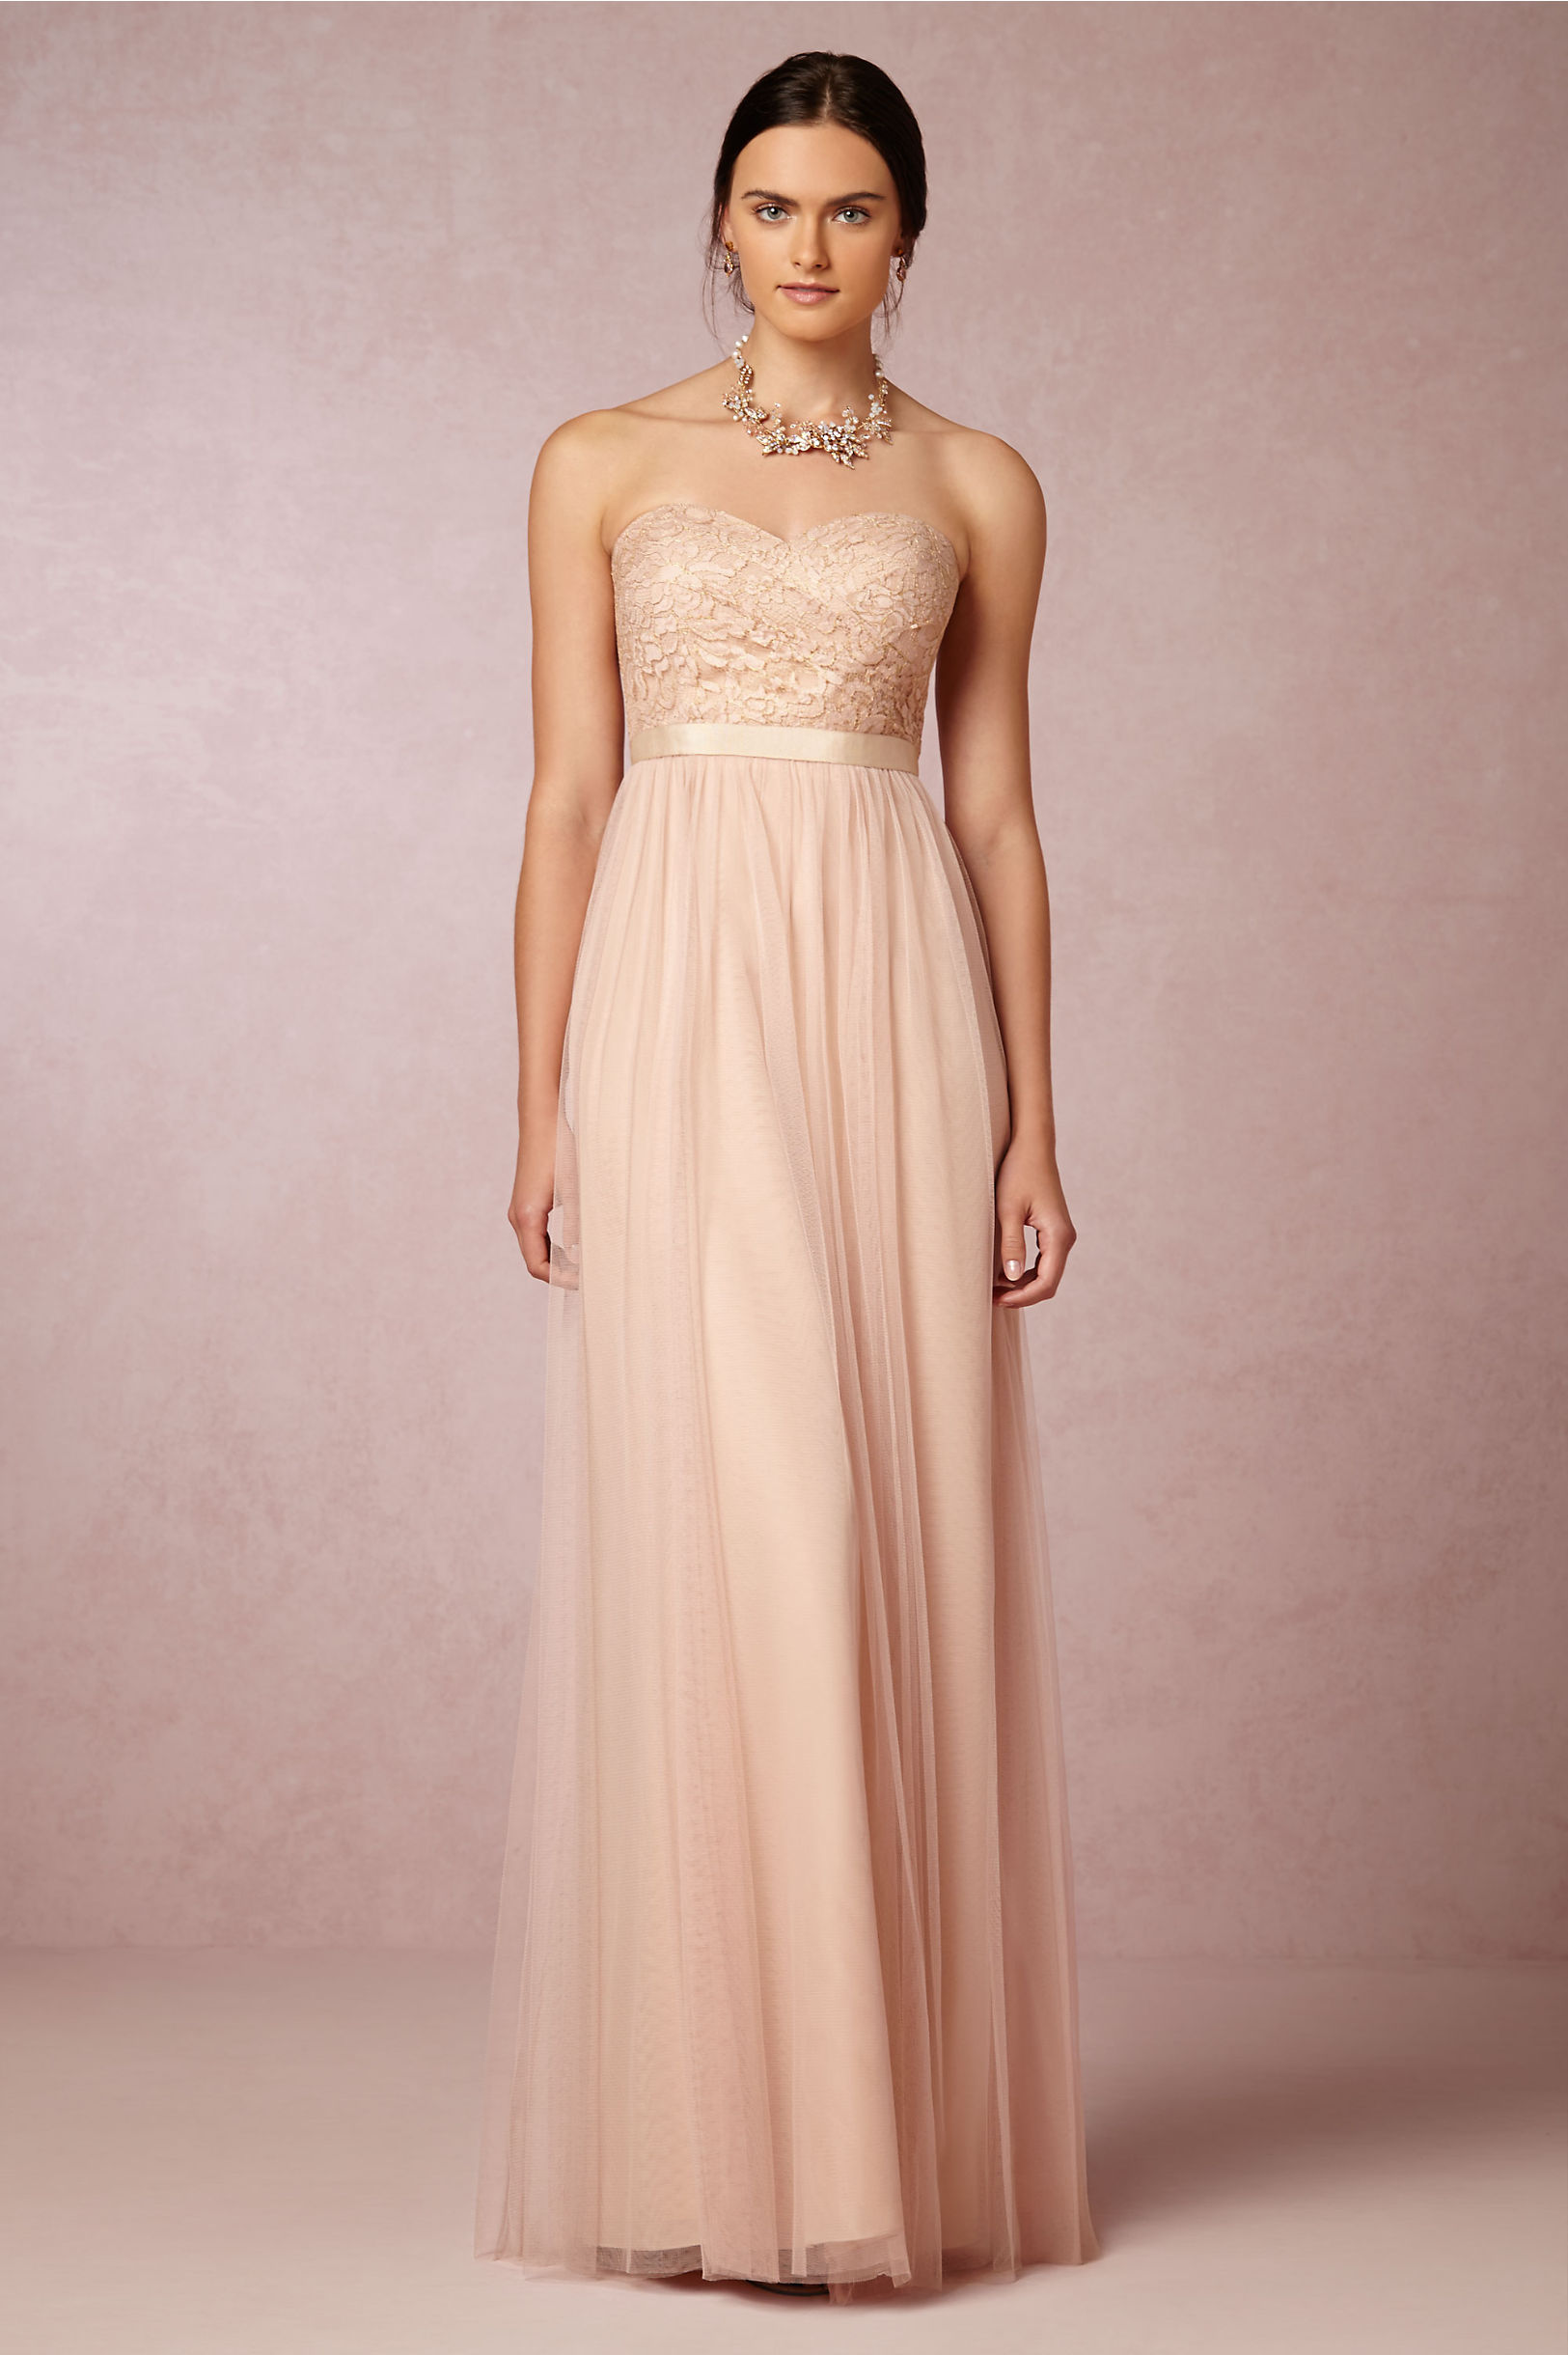 Juliette dress in bridal party bhldn jenny yoo cameo pink juliette dress bhldn ombrellifo Images